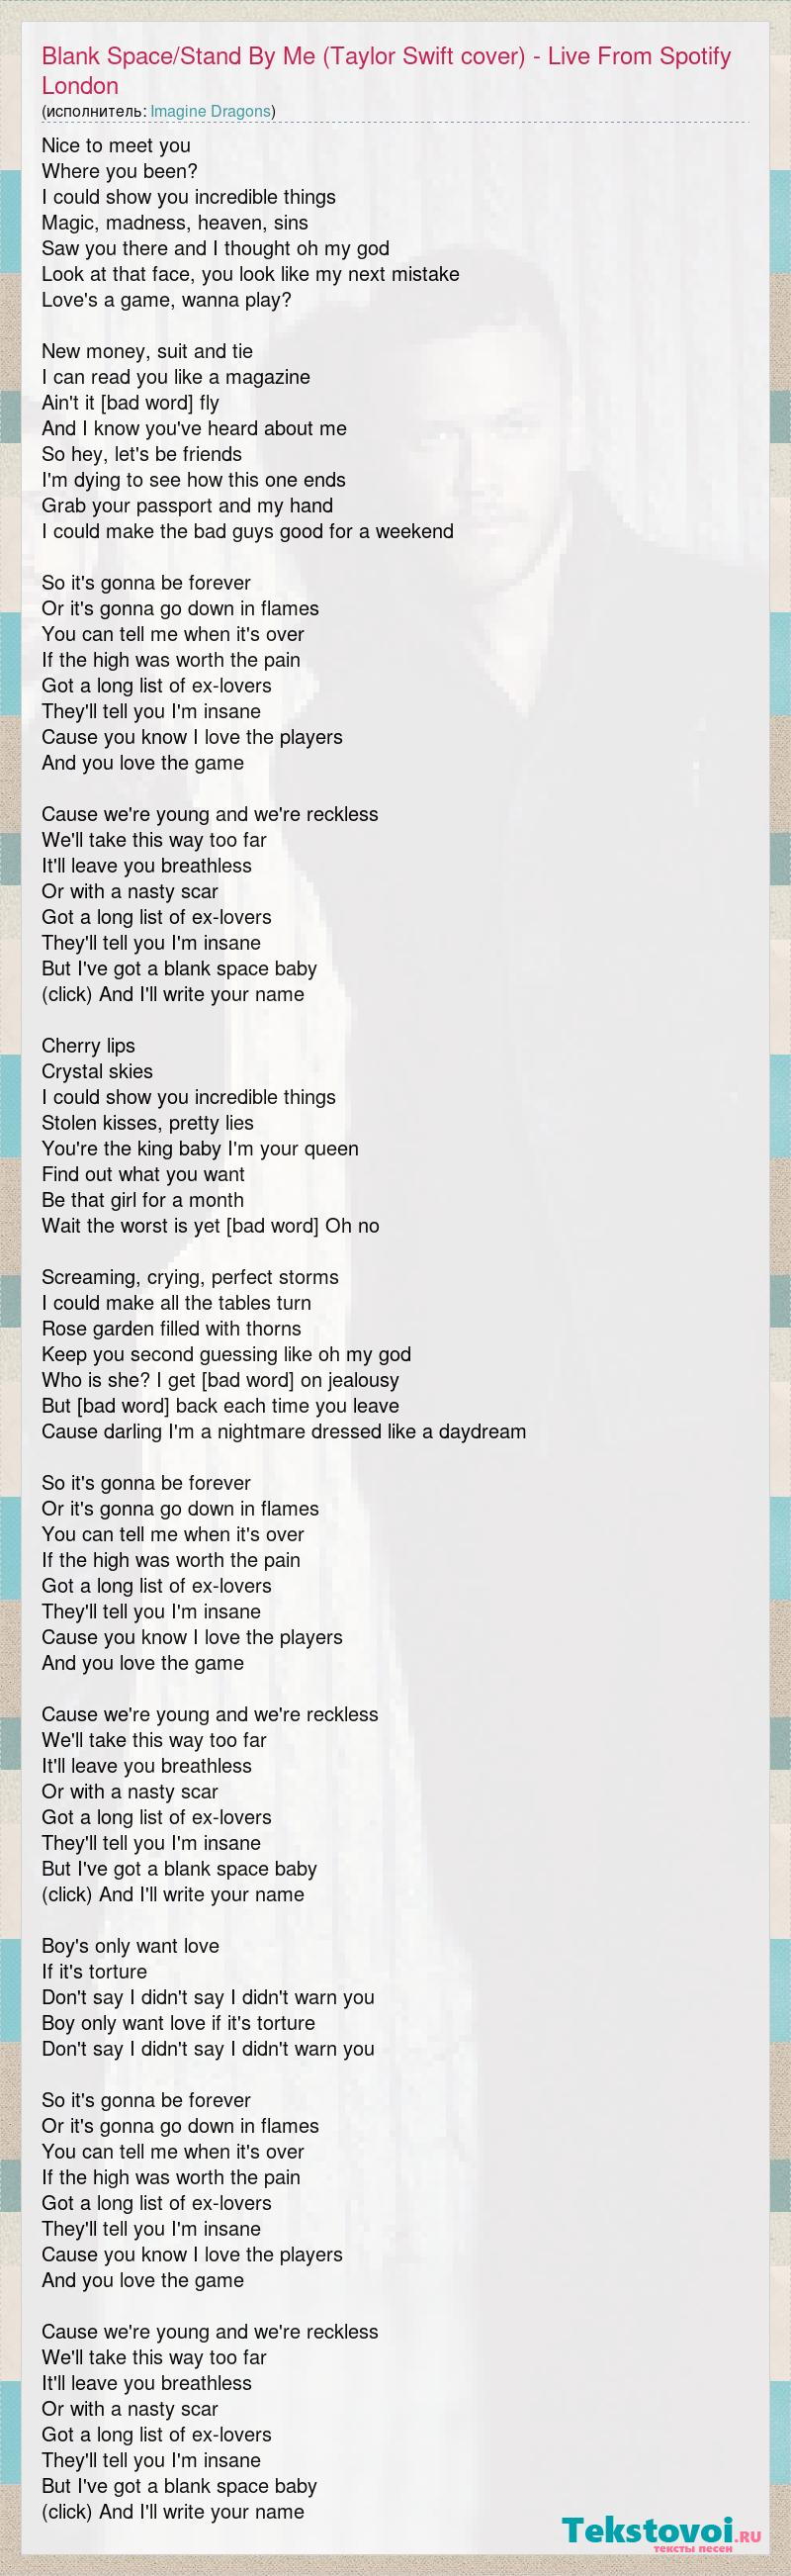 Imagine Dragons: Blank Space/Stand By Me (Taylor Swift cover